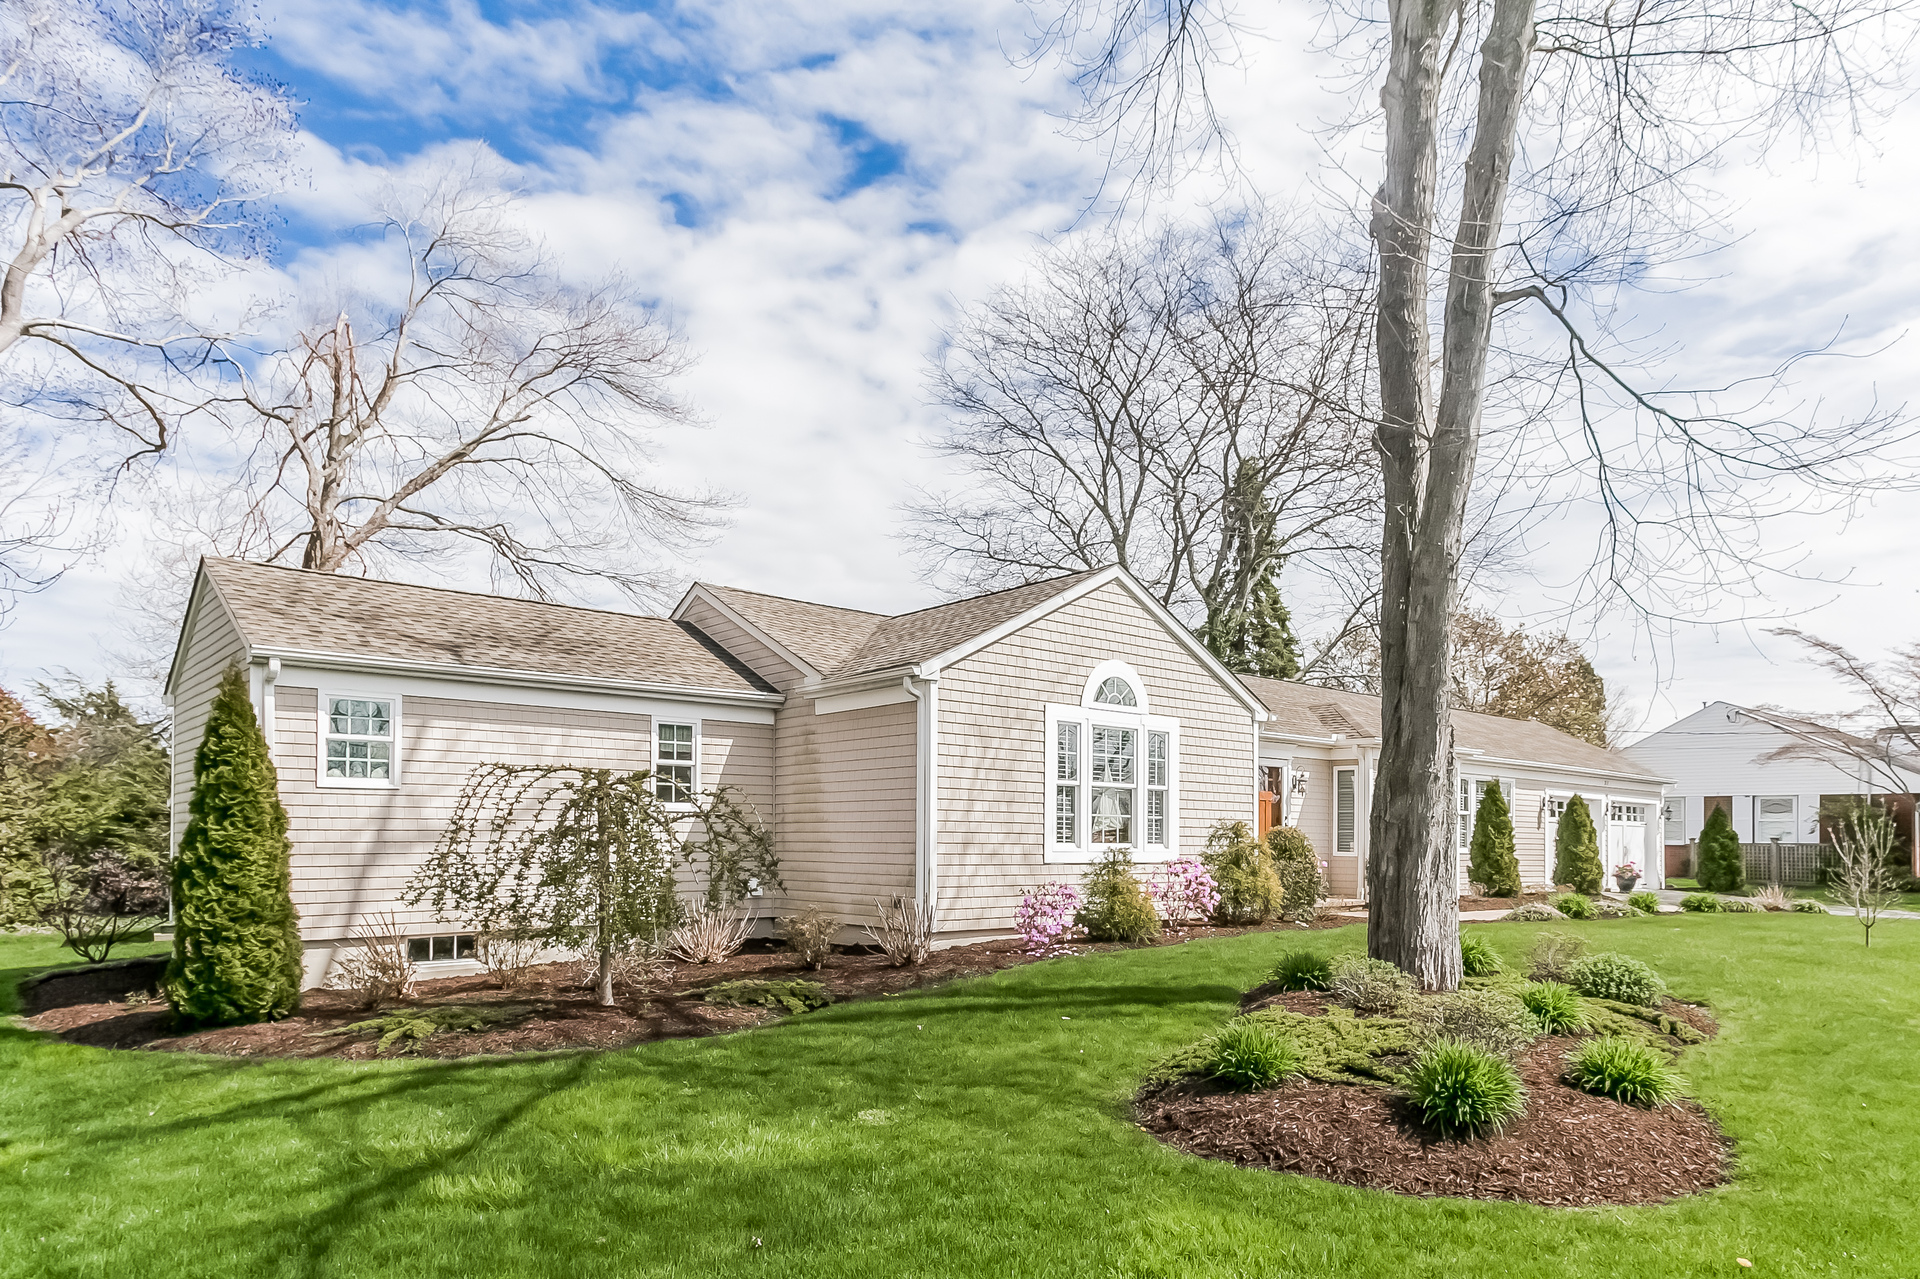 Single Family Home for Sale at Pristine! Walk to town, beach & golf course. 31 West Wharf Rd Madison, Connecticut, 06443 United States